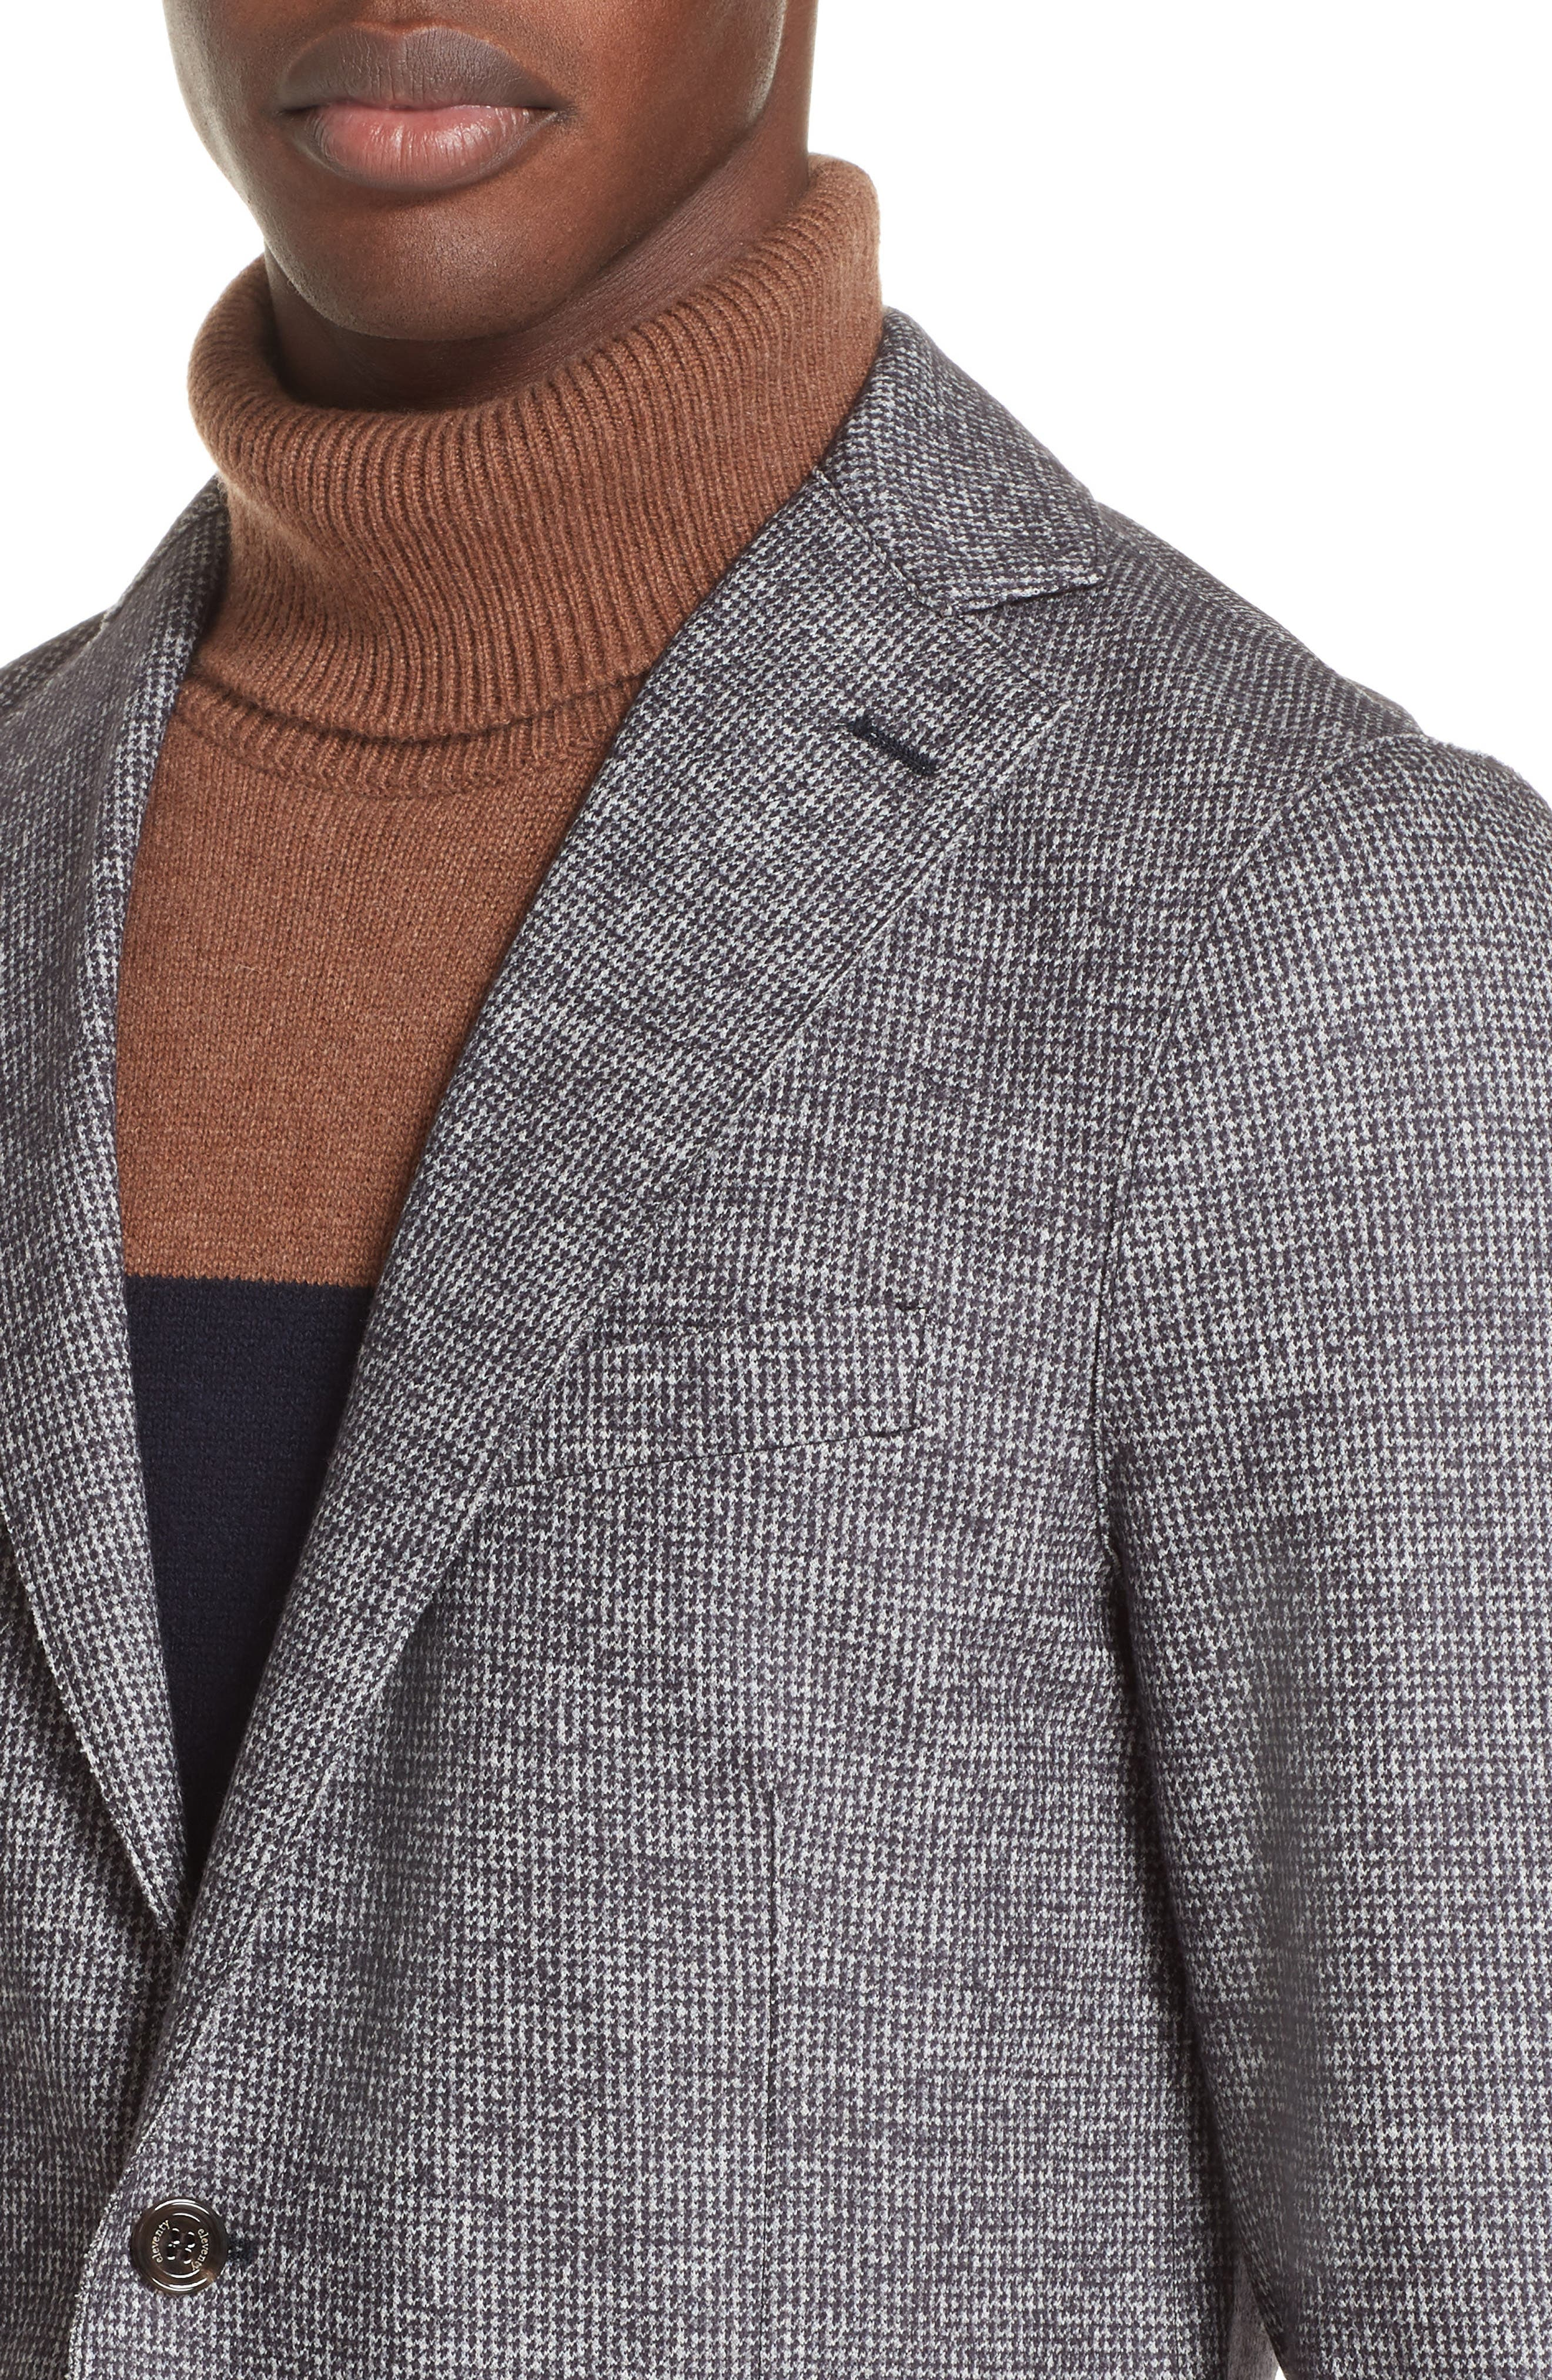 Trim Fit Houndstooth Wool & Cotton Sport Coat,                             Alternate thumbnail 4, color,                             GREY